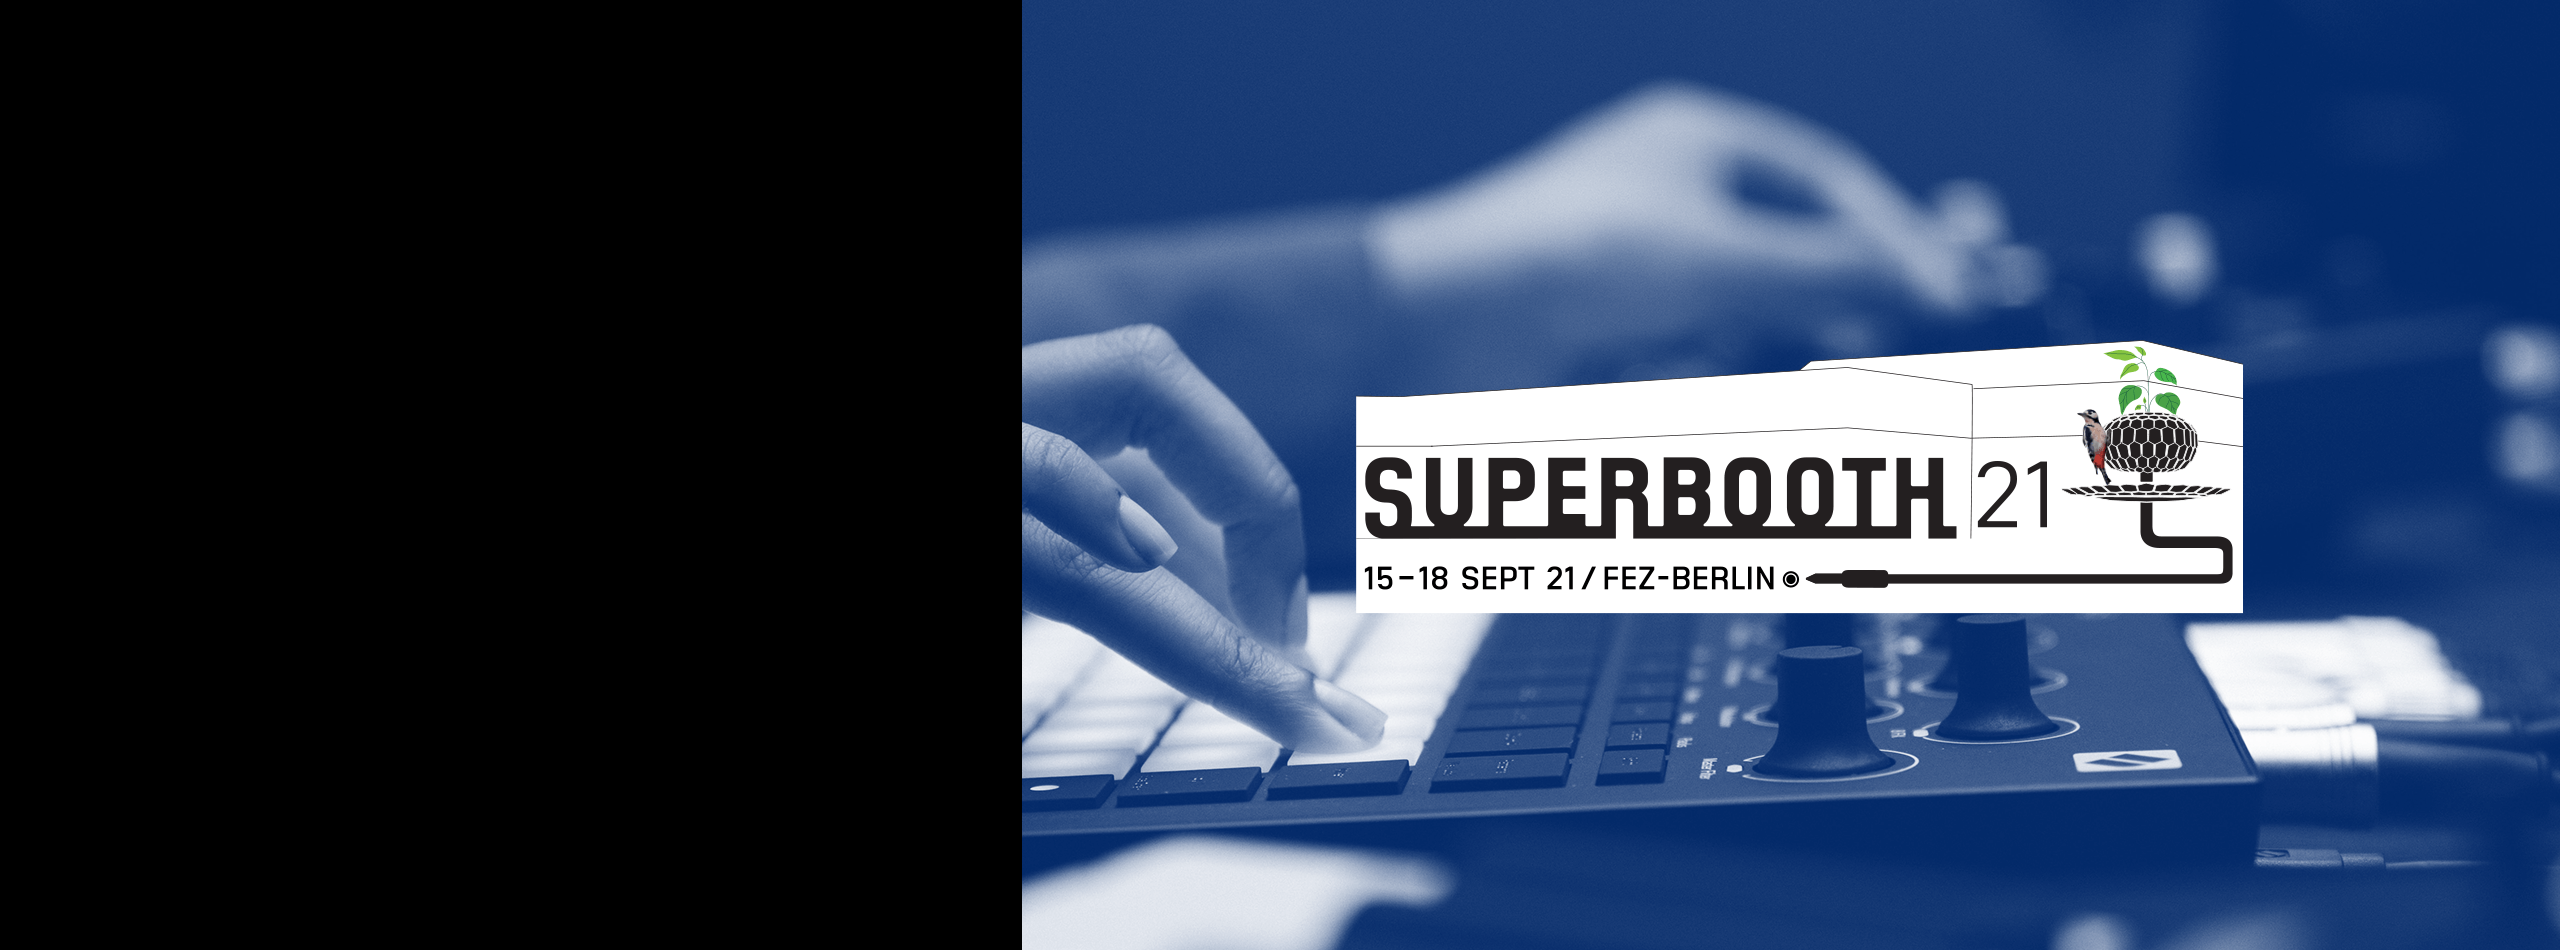 A photo of the Superbooth logo